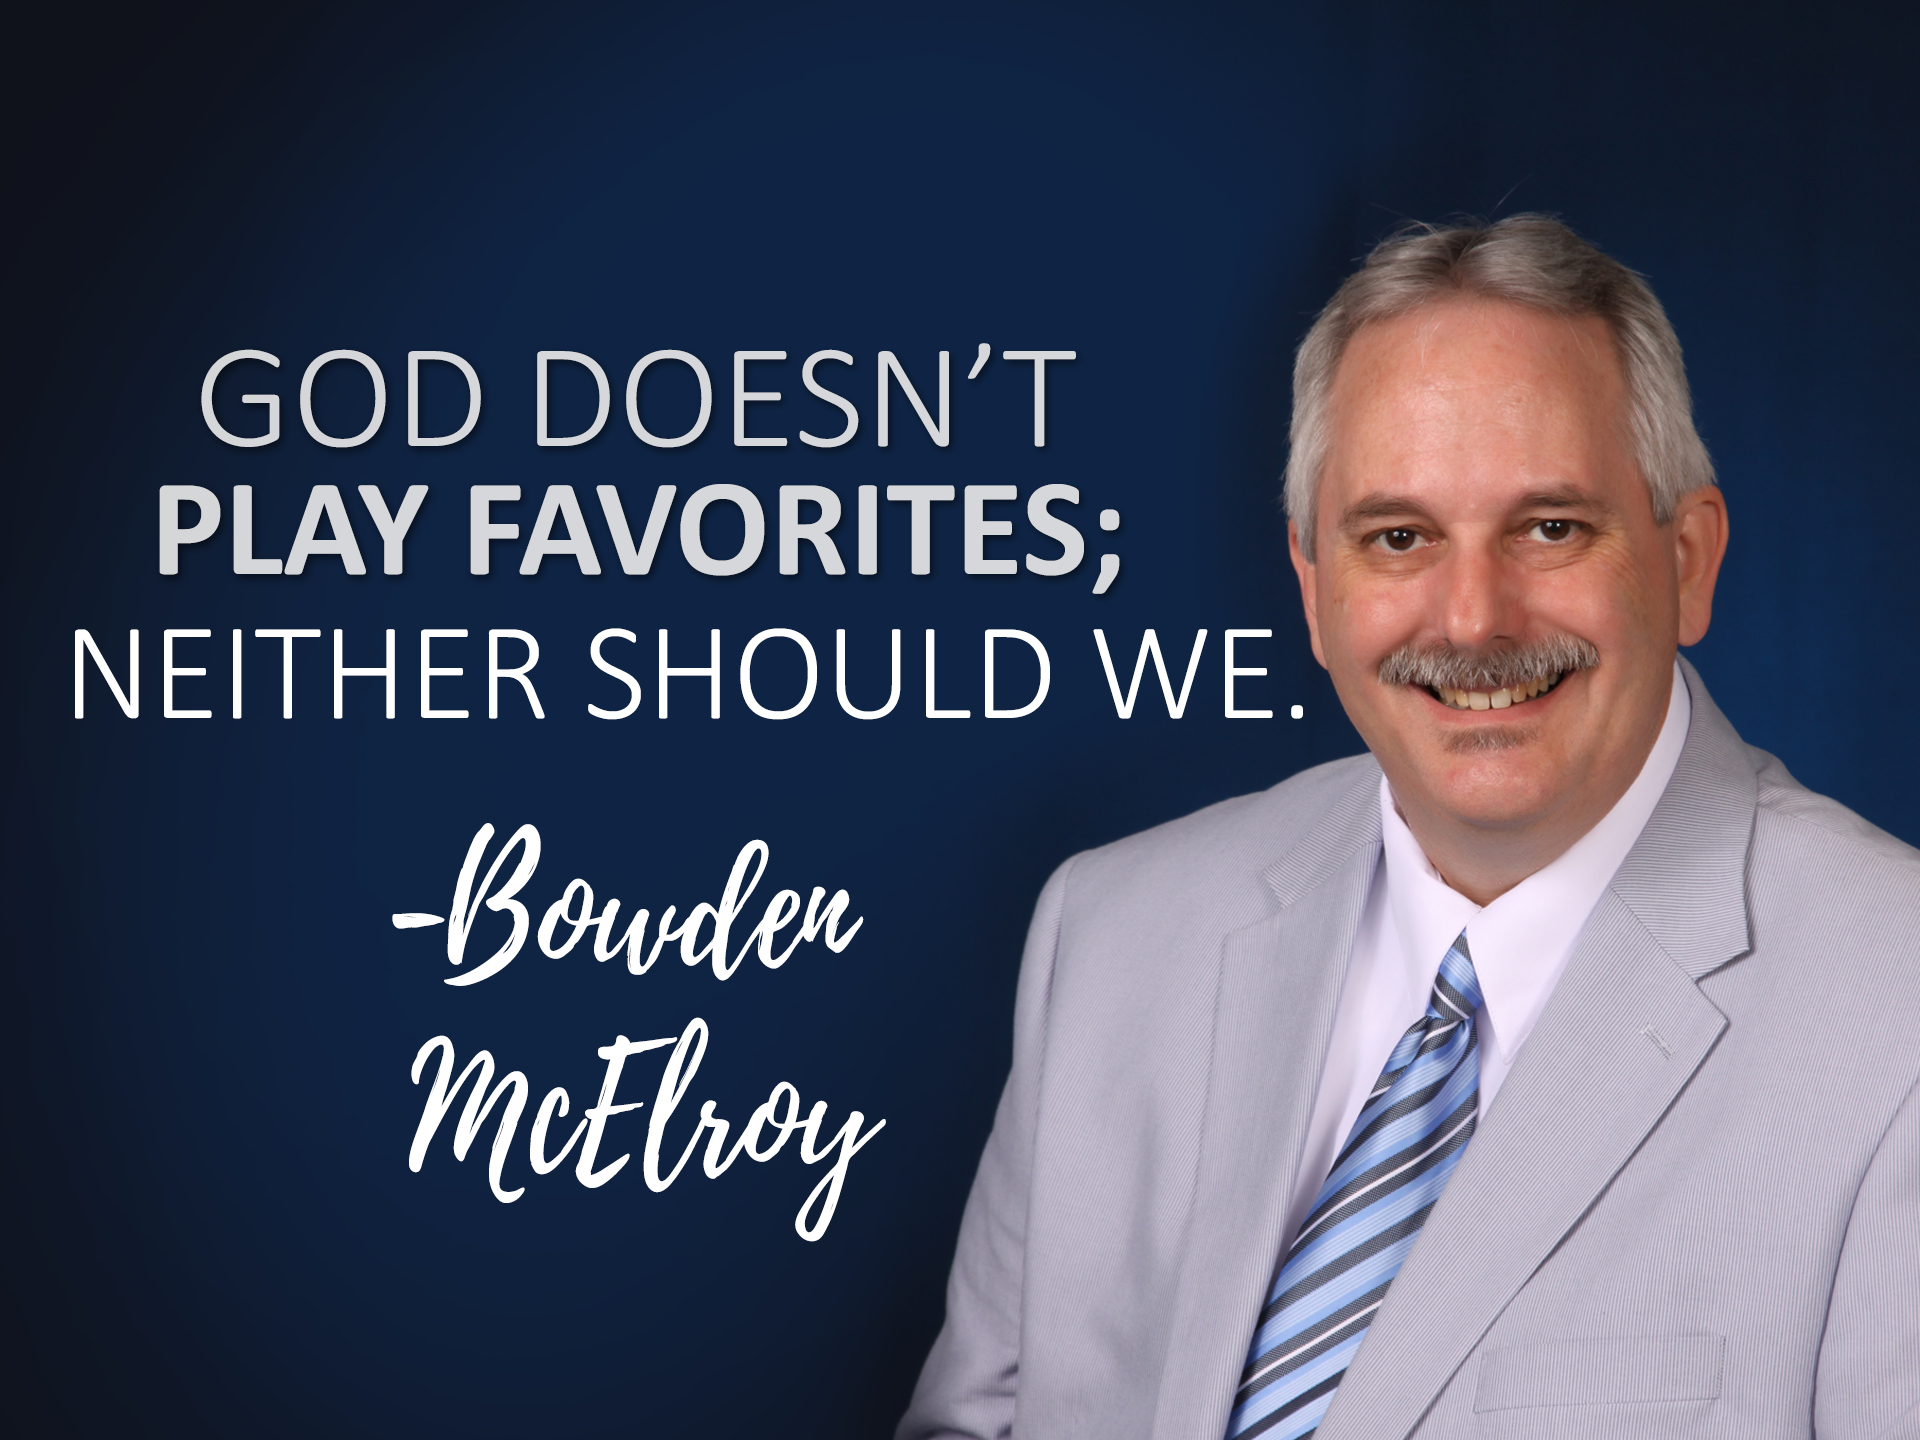 20170924 Bowden McElroy.png